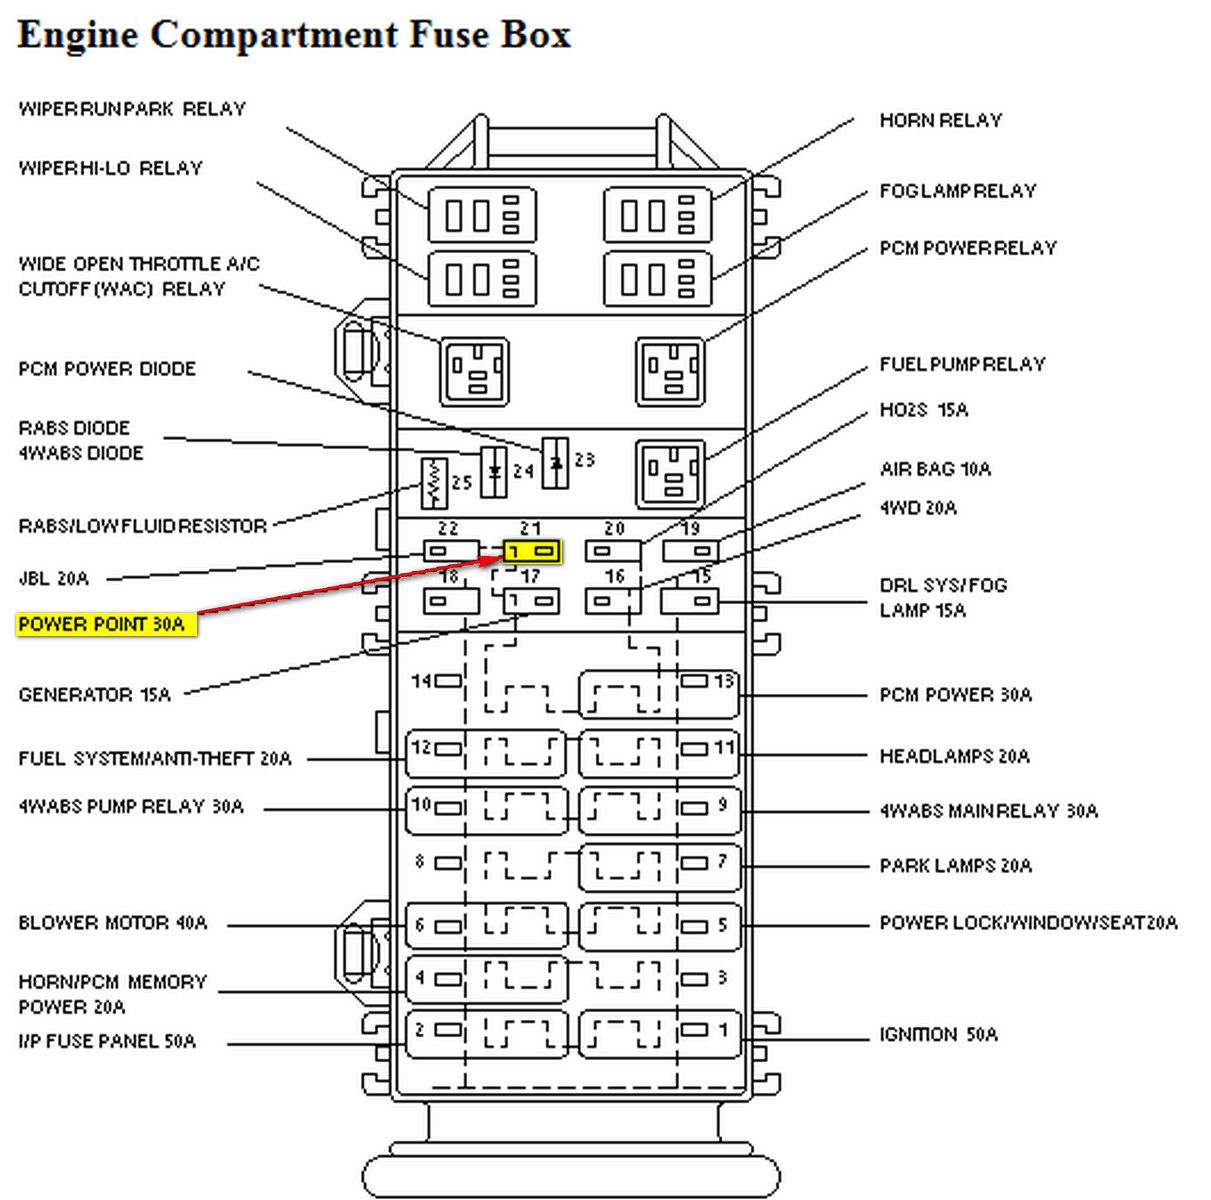 2002 ford ranger fuse diagram 1997 ford ranger fuse box diagram fuse box diagram for 1997 [ 1211 x 1200 Pixel ]